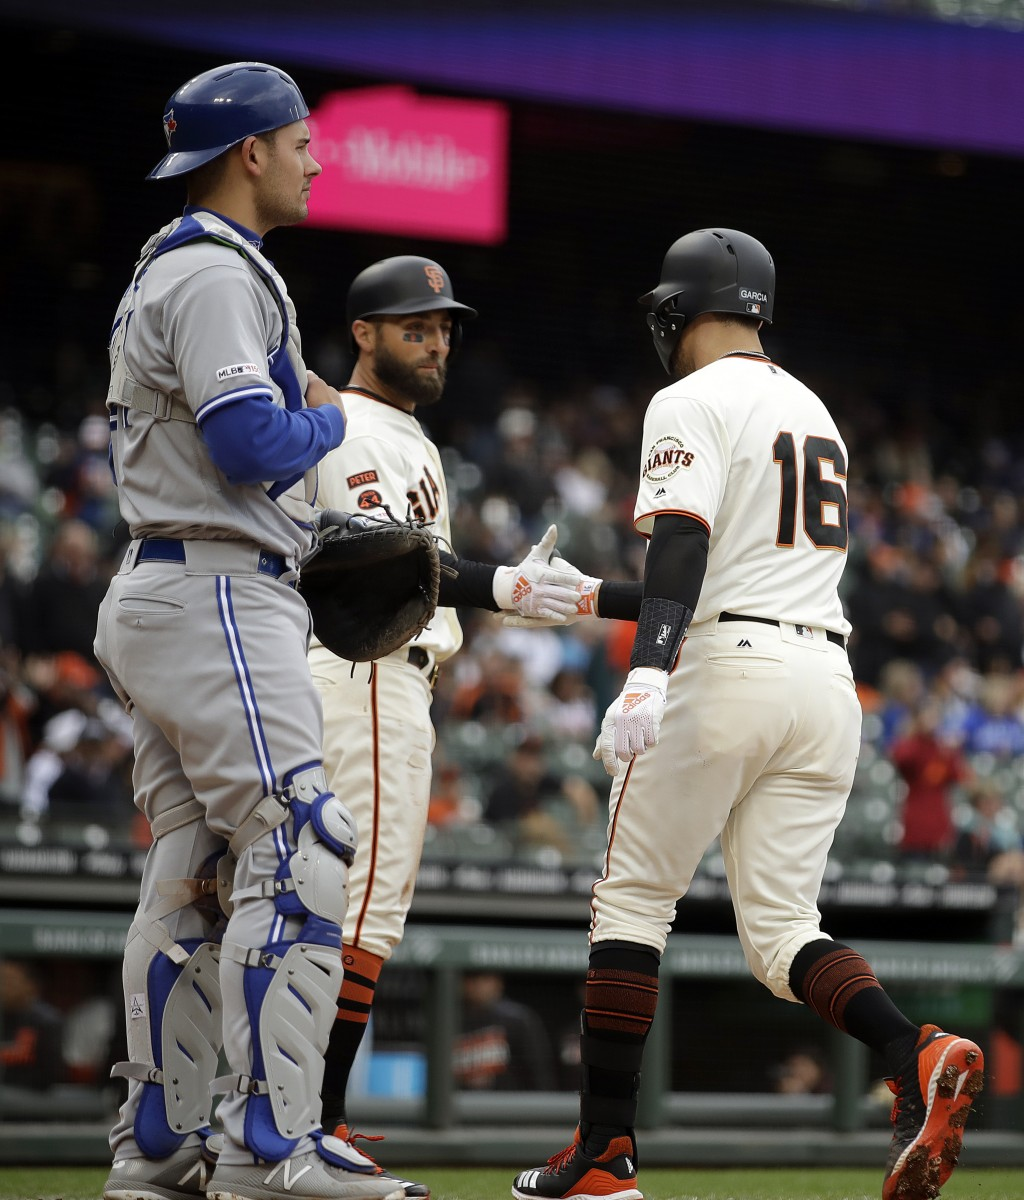 San Francisco Giants' Aramis Garcia (16) is congratulated by Kevin Pillar after hitting a two run home run off Toronto Blue Jays' Edwin Jackson in the